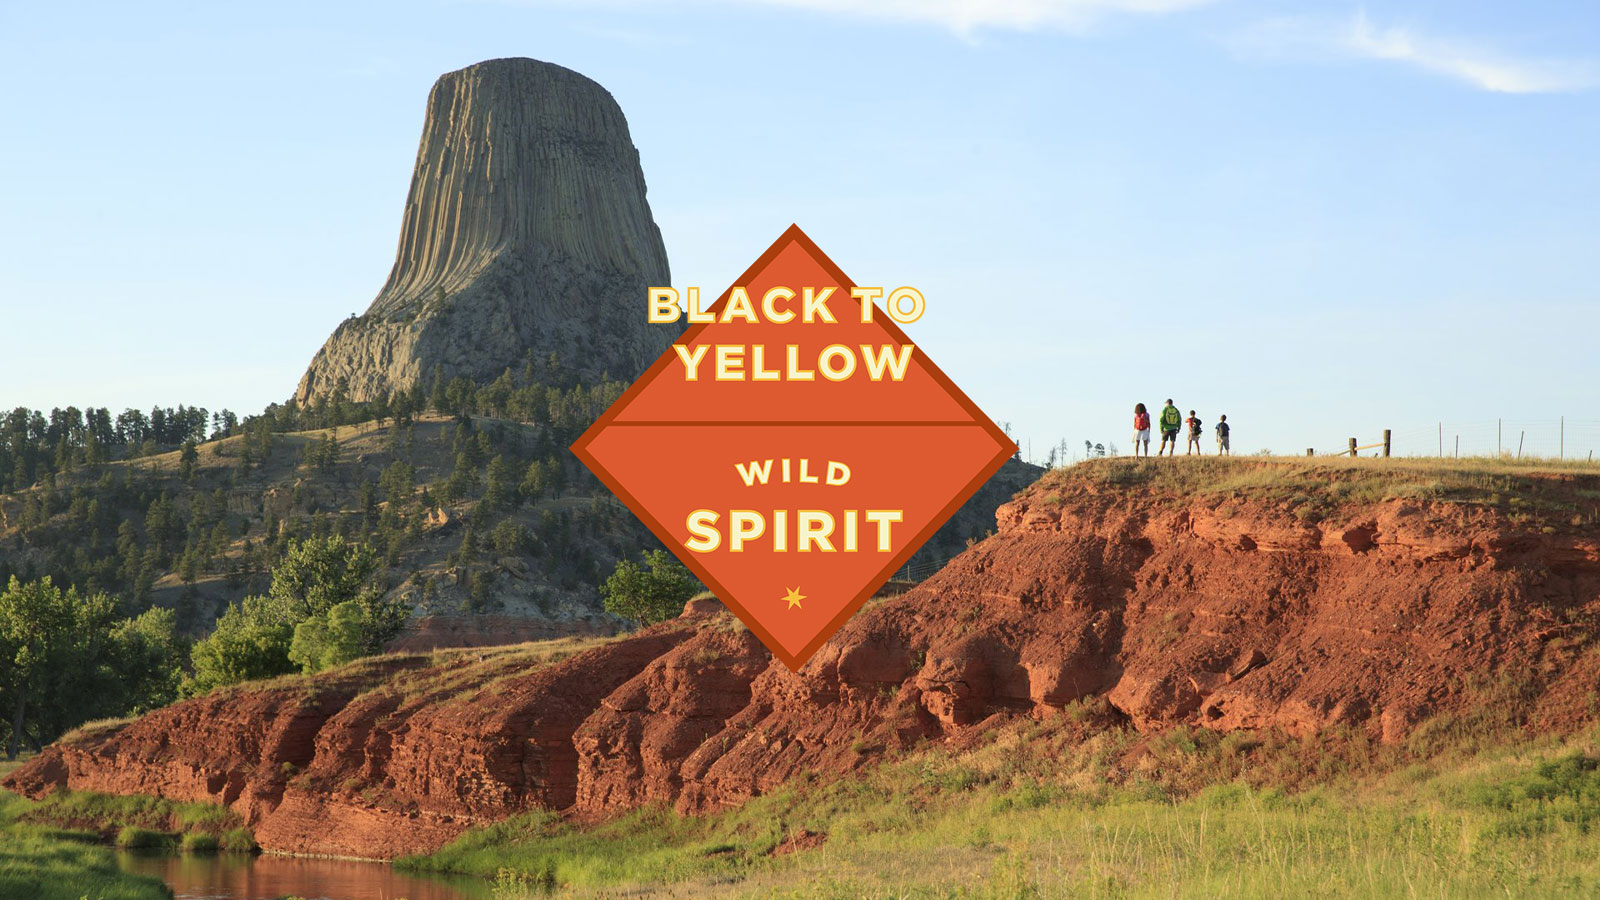 Black to Yellow Route, Wild Spirit.